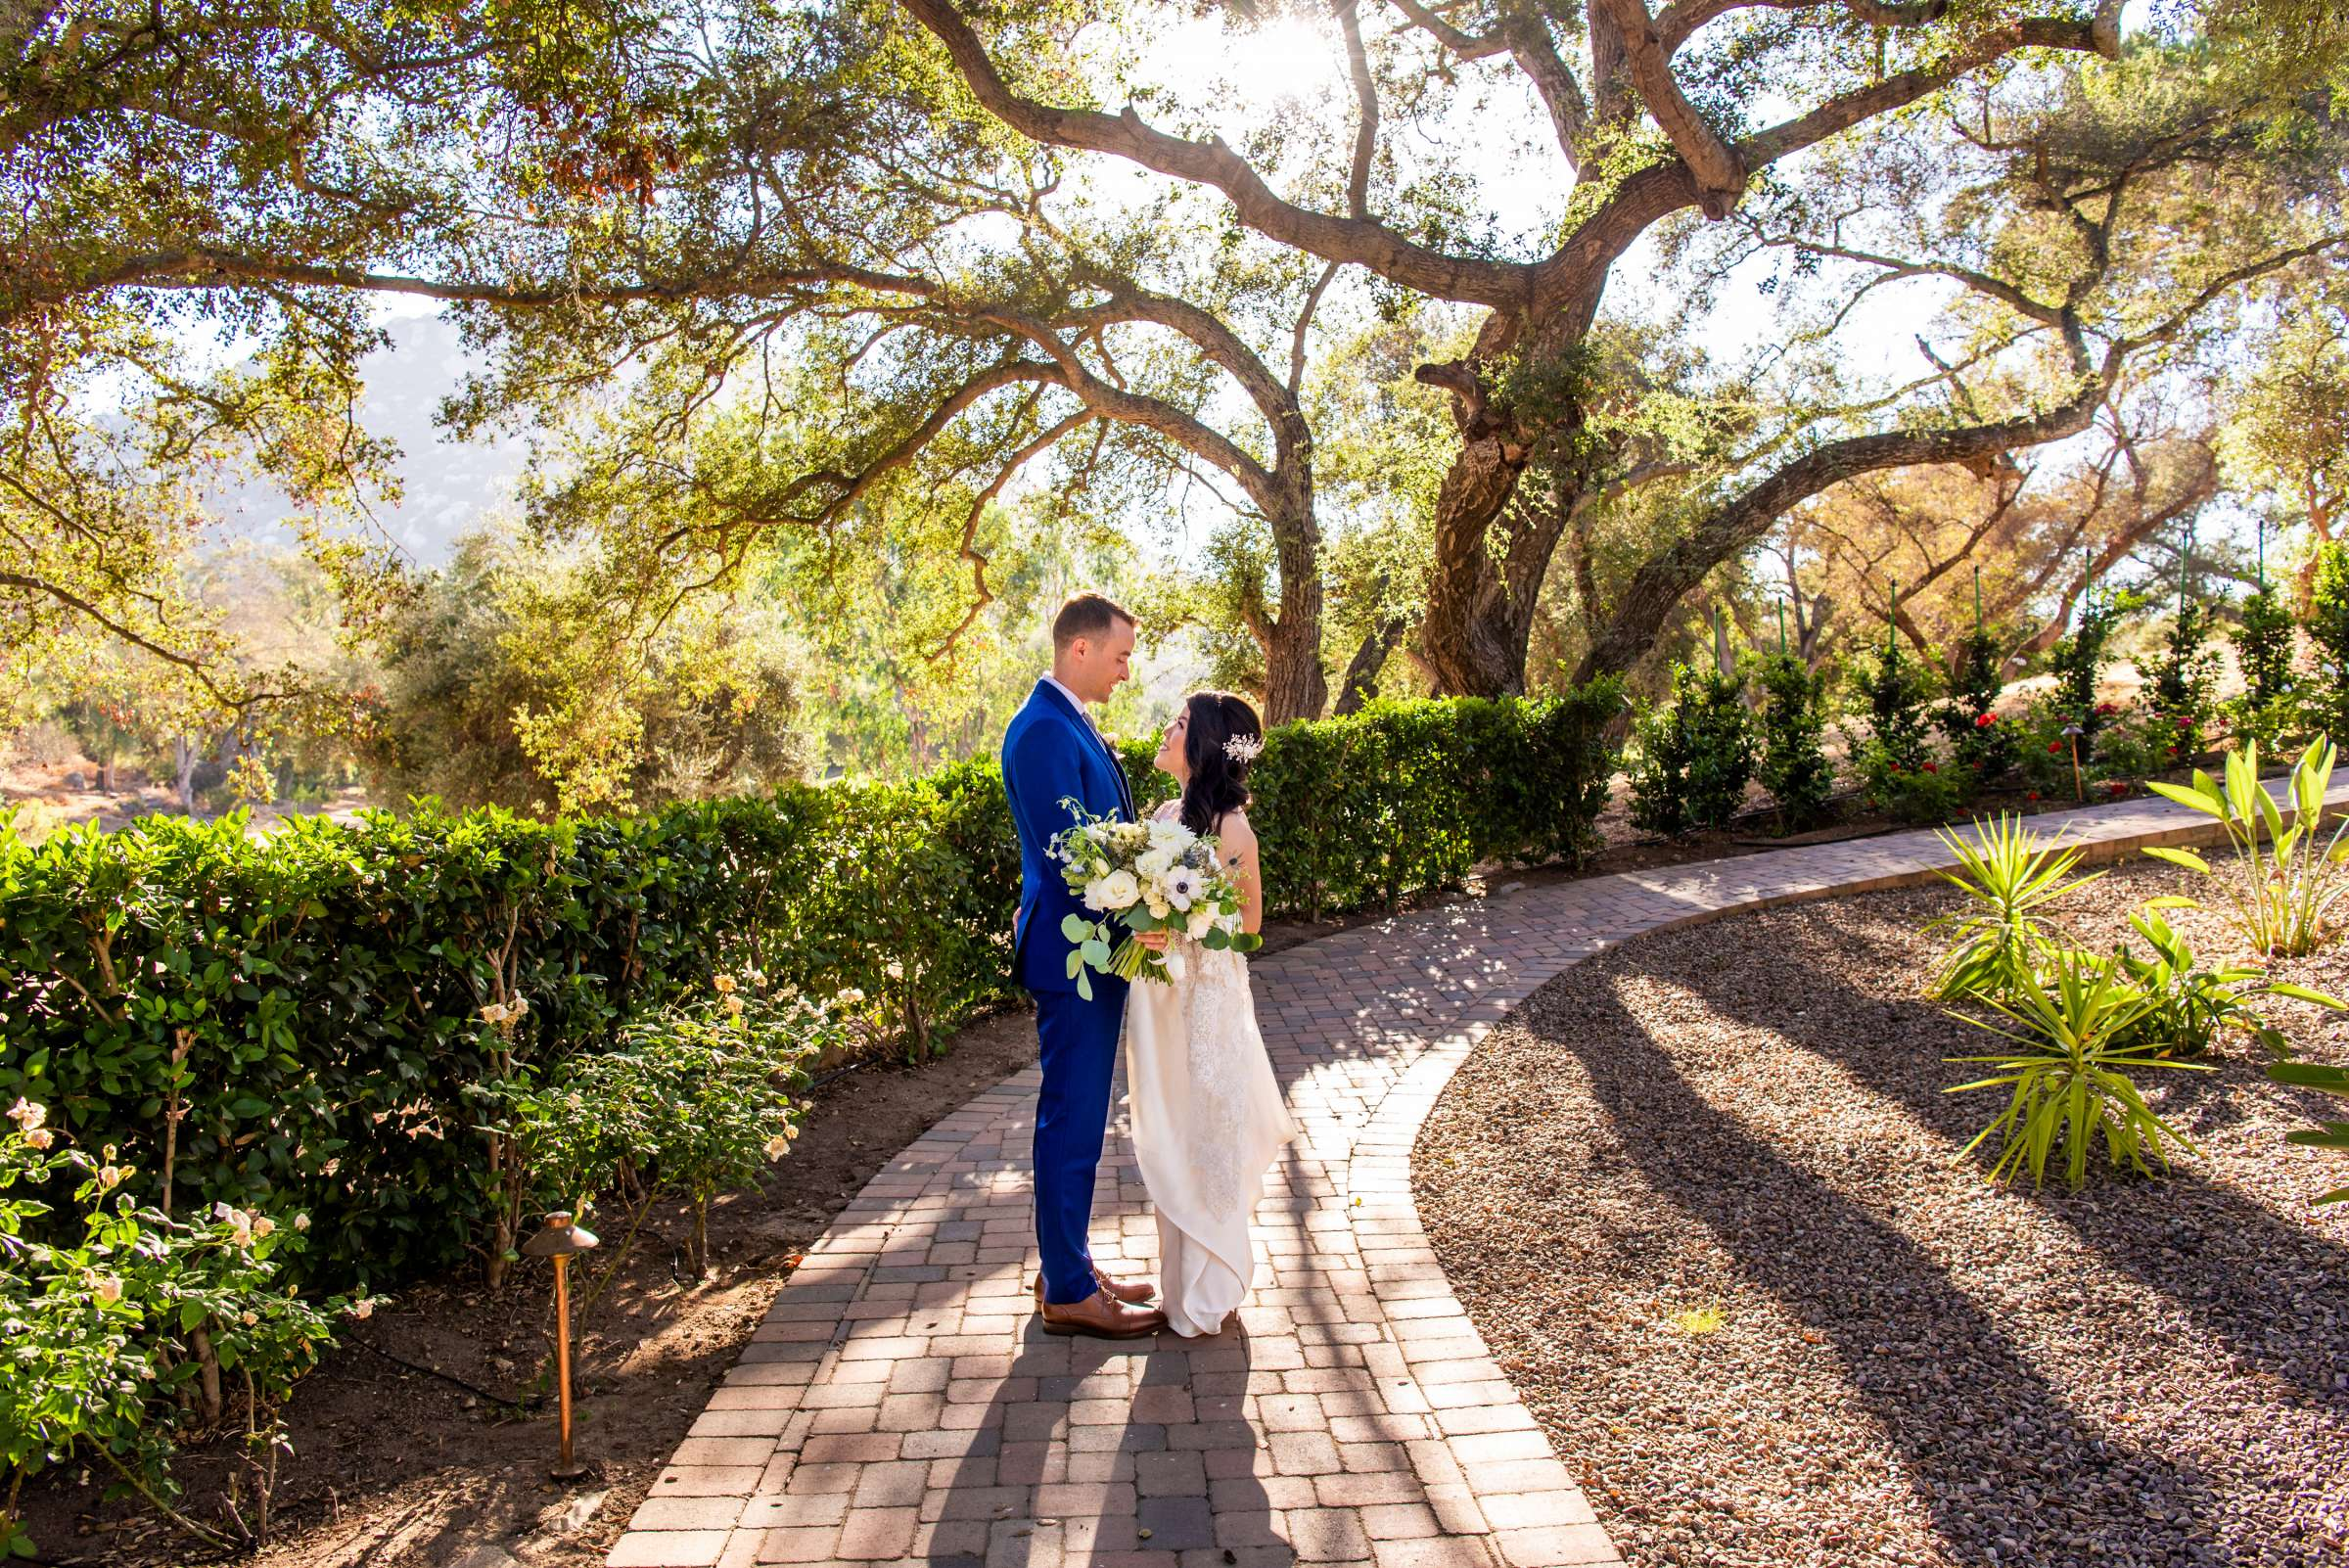 Mt Woodson Castle Wedding coordinated by I Do Weddings, Aya and Jared Wedding Photo #486963 by True Photography